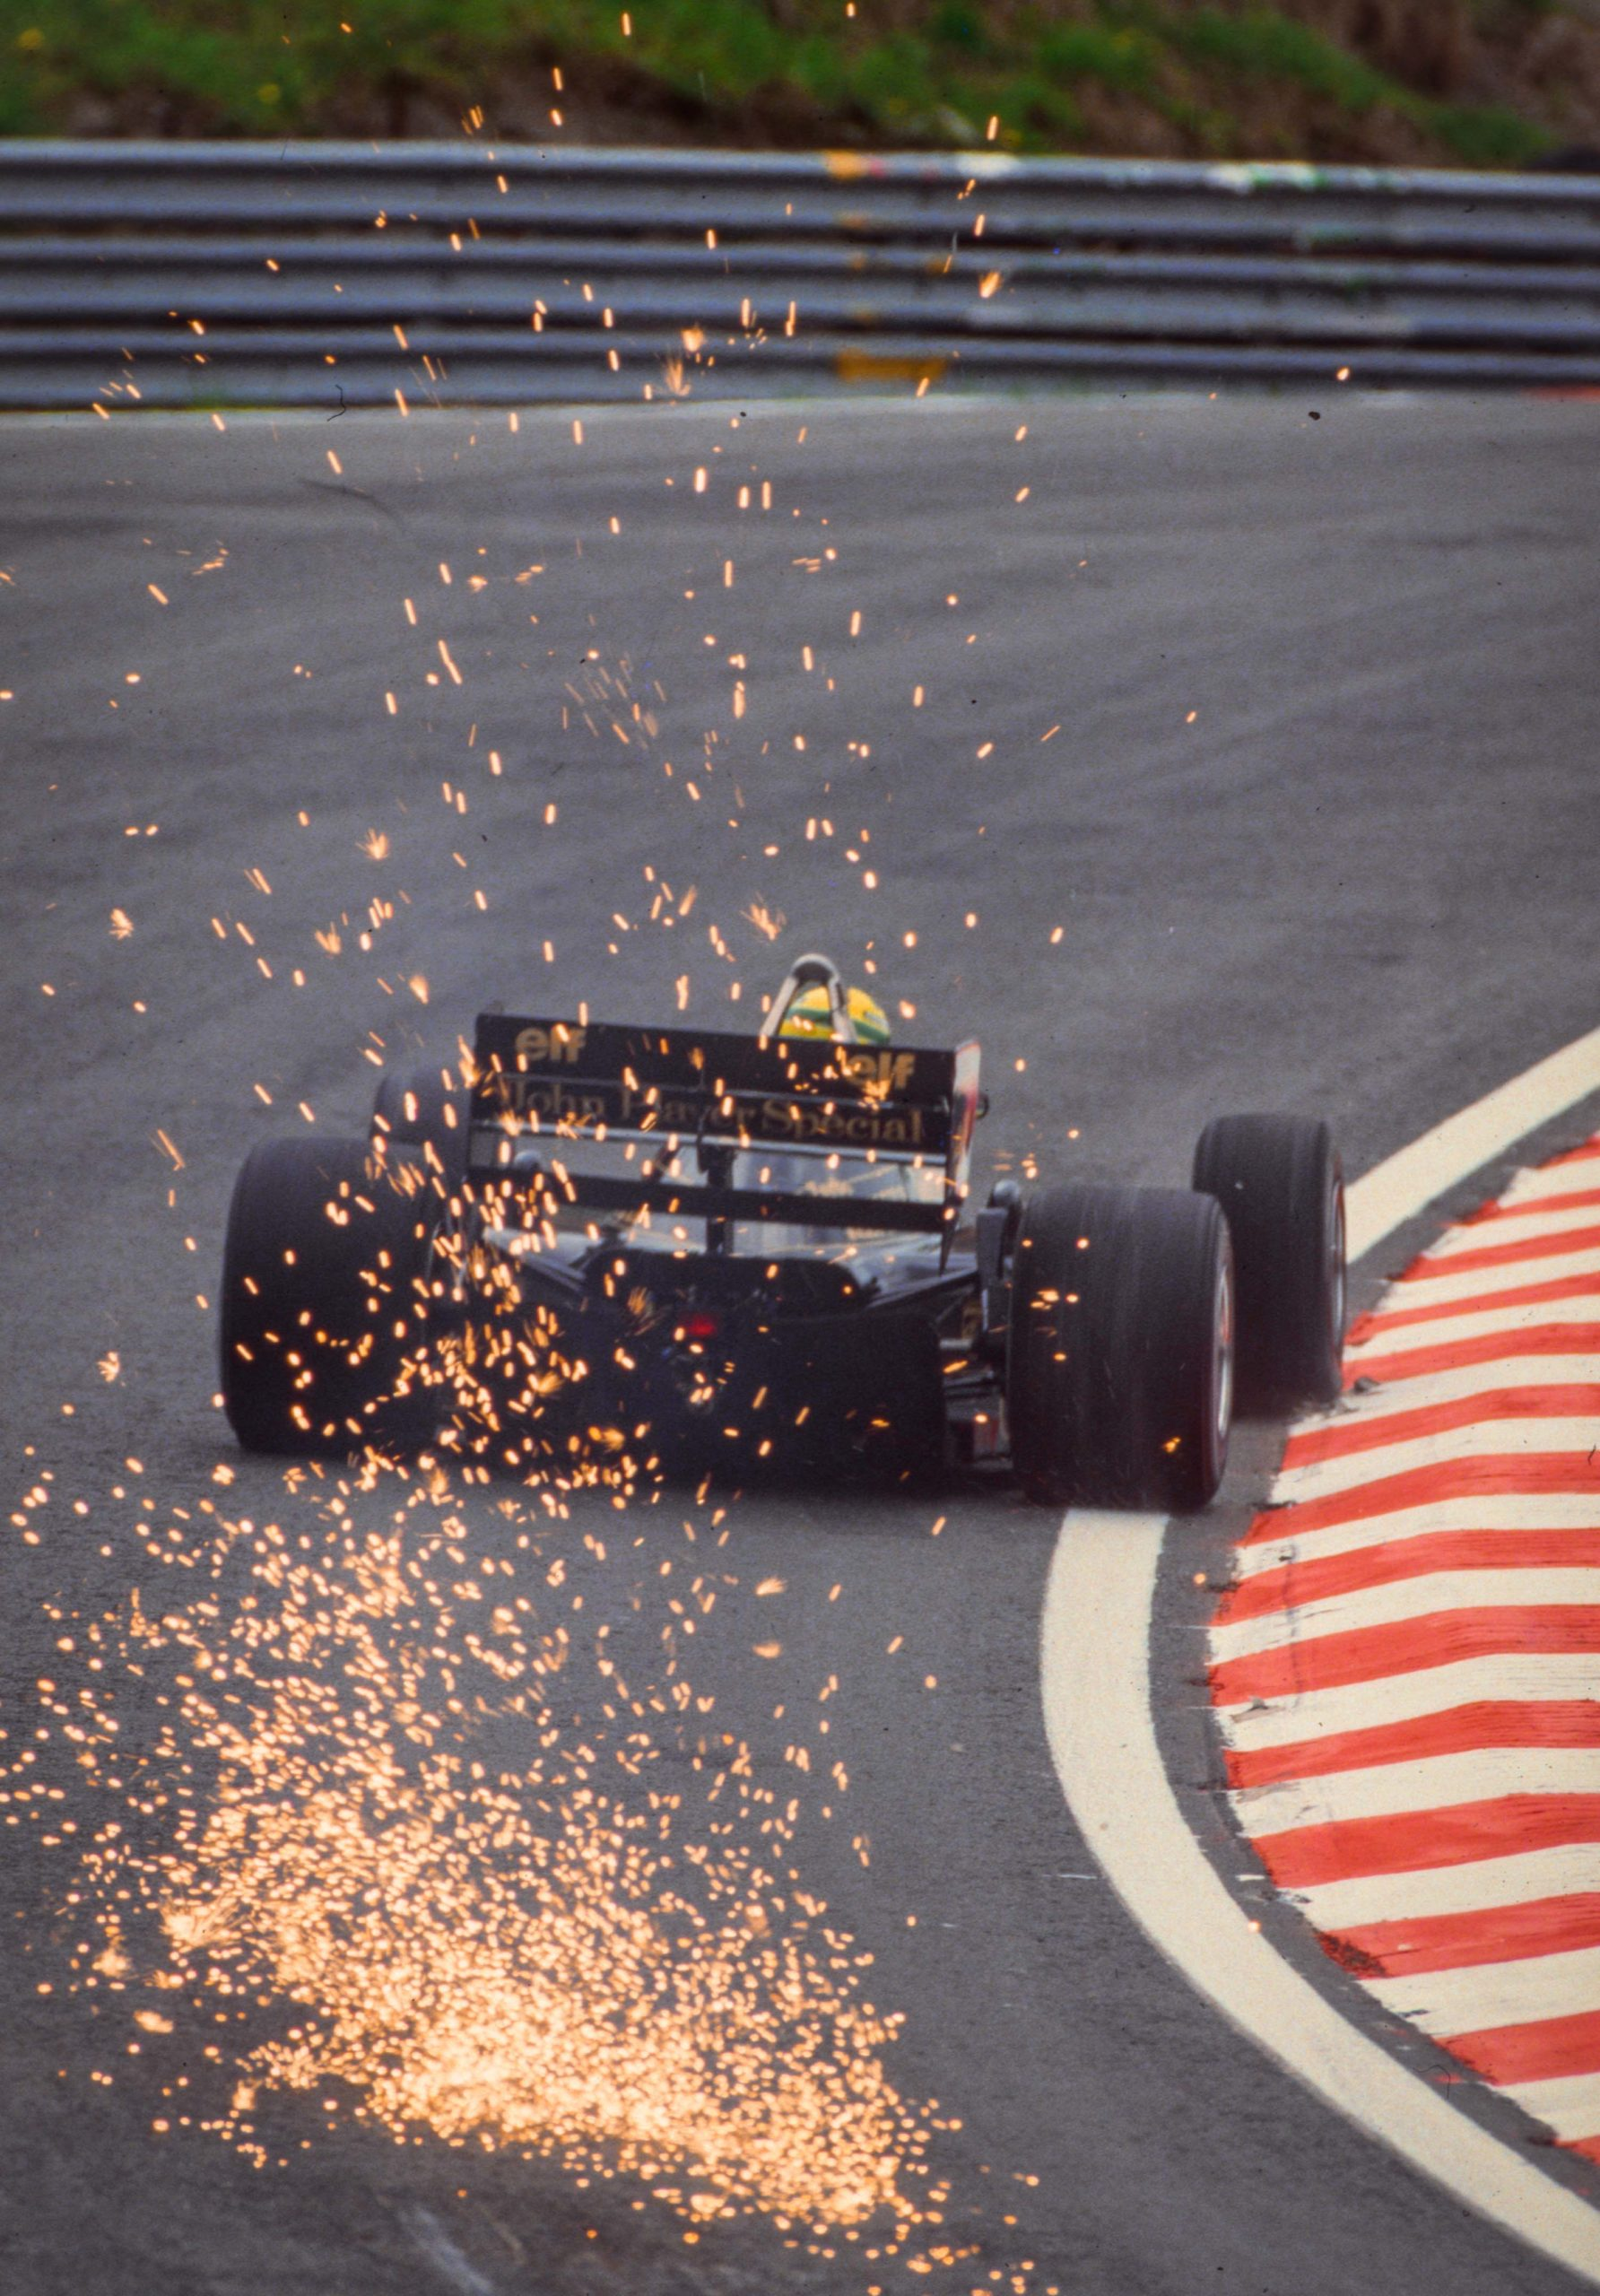 7.-Sparks-fly-from-Ayrton-Sennas-Lotus-at-the-1986-Belgian-Grand-Prix-scaled.jpg